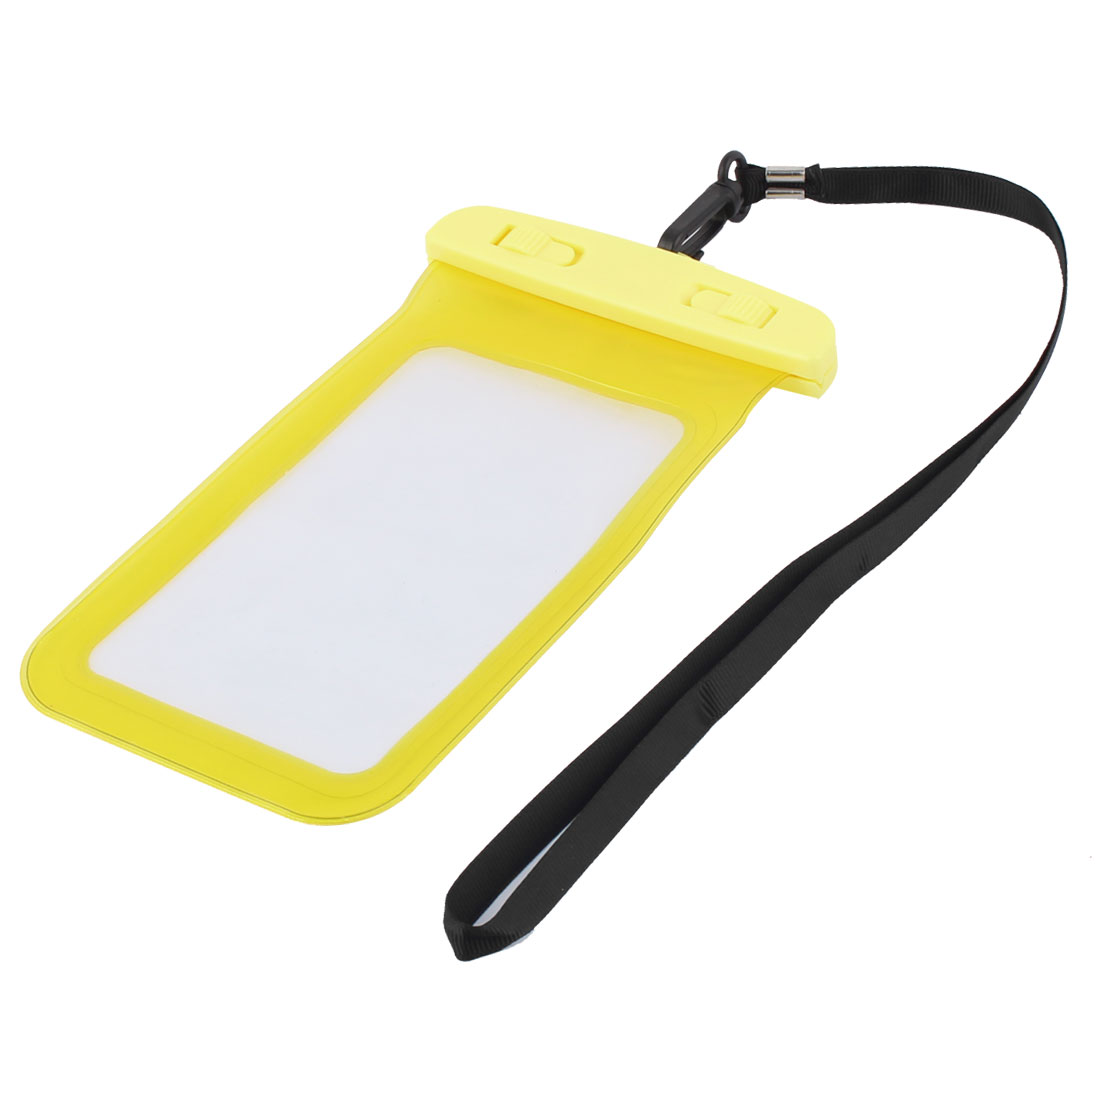 Underwater Cell Phone Water Resistant Case Bag Pouch Holder Container Yellow